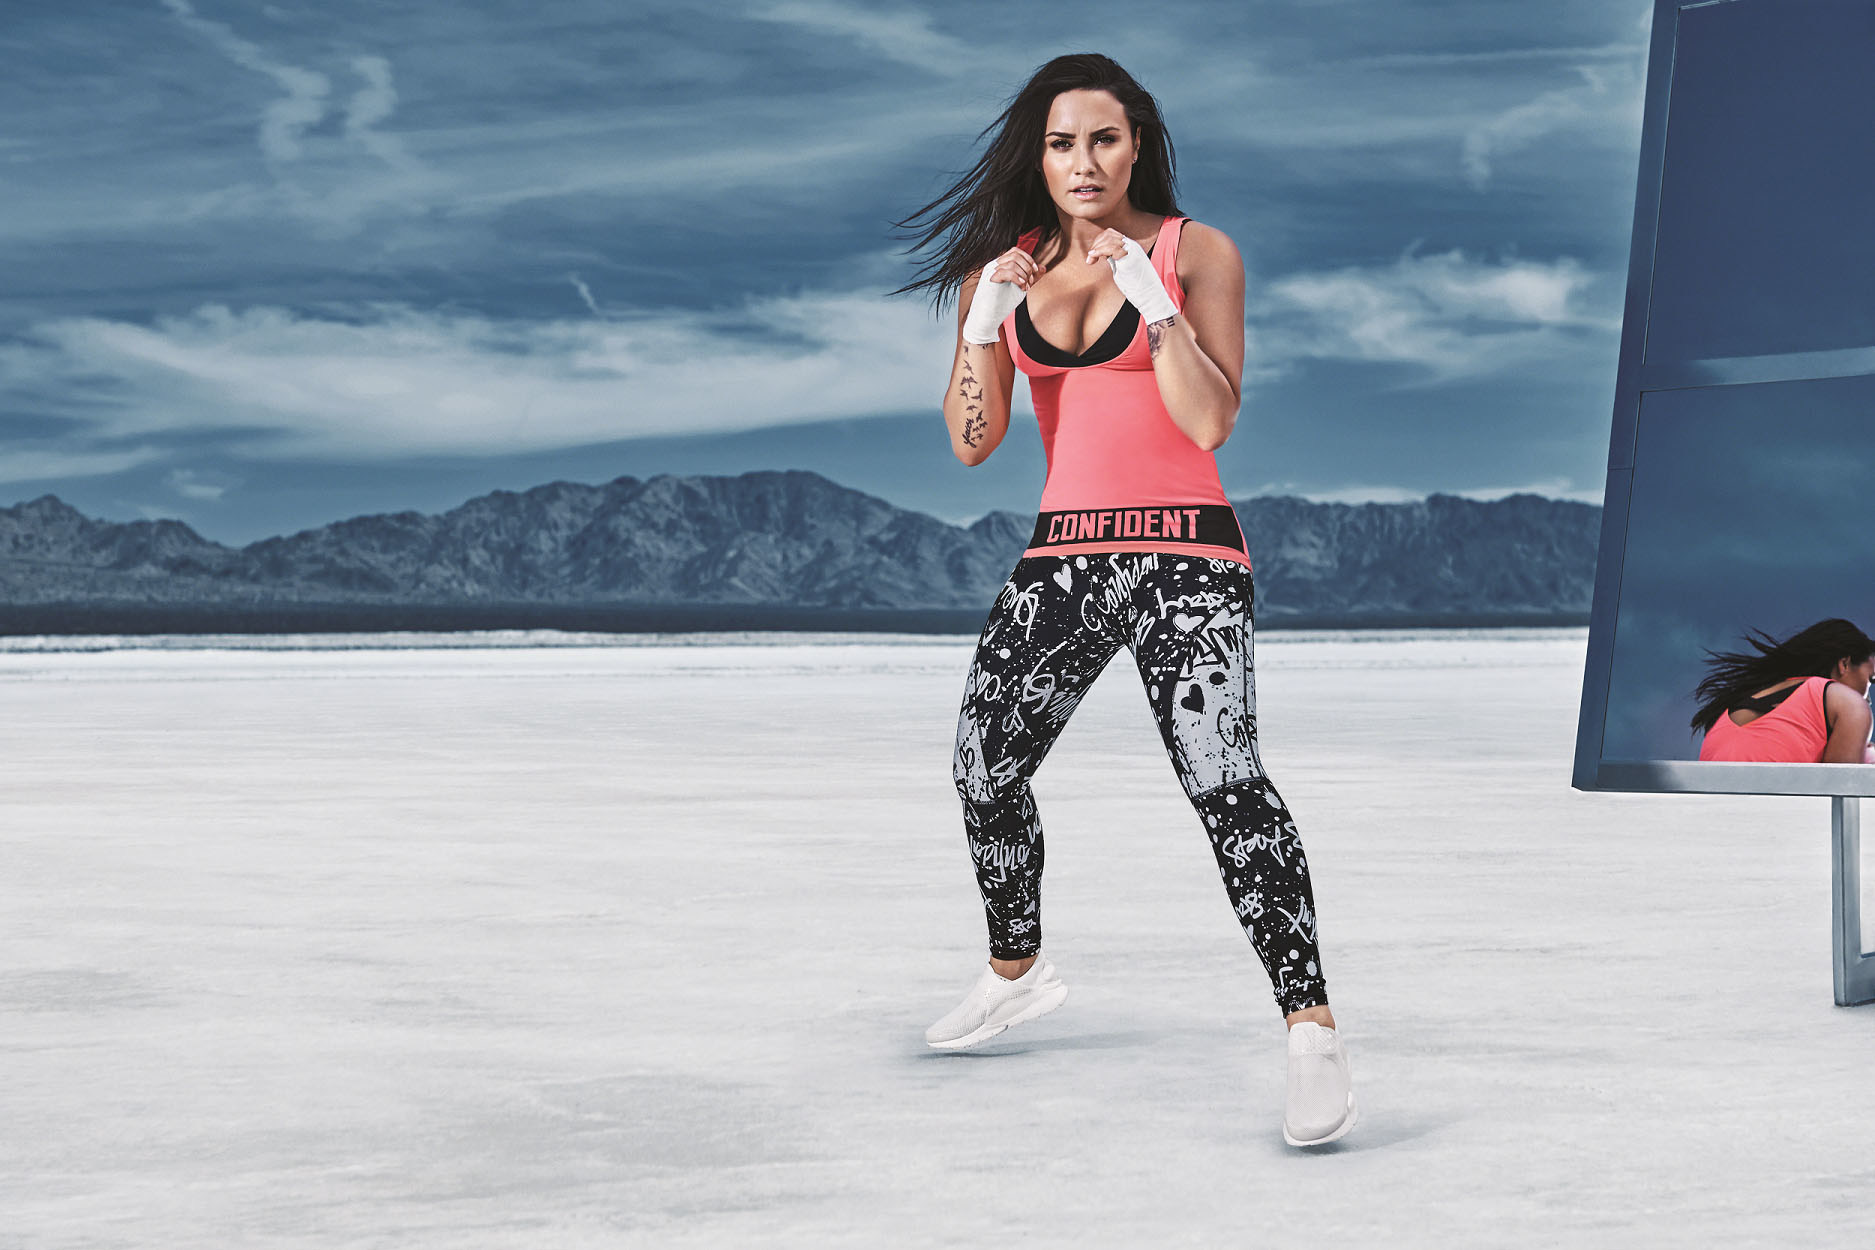 6b2a40f603 ... co-founded by Kate Hudson is making its first celebrity collaboration.  fabletics, demi lovato